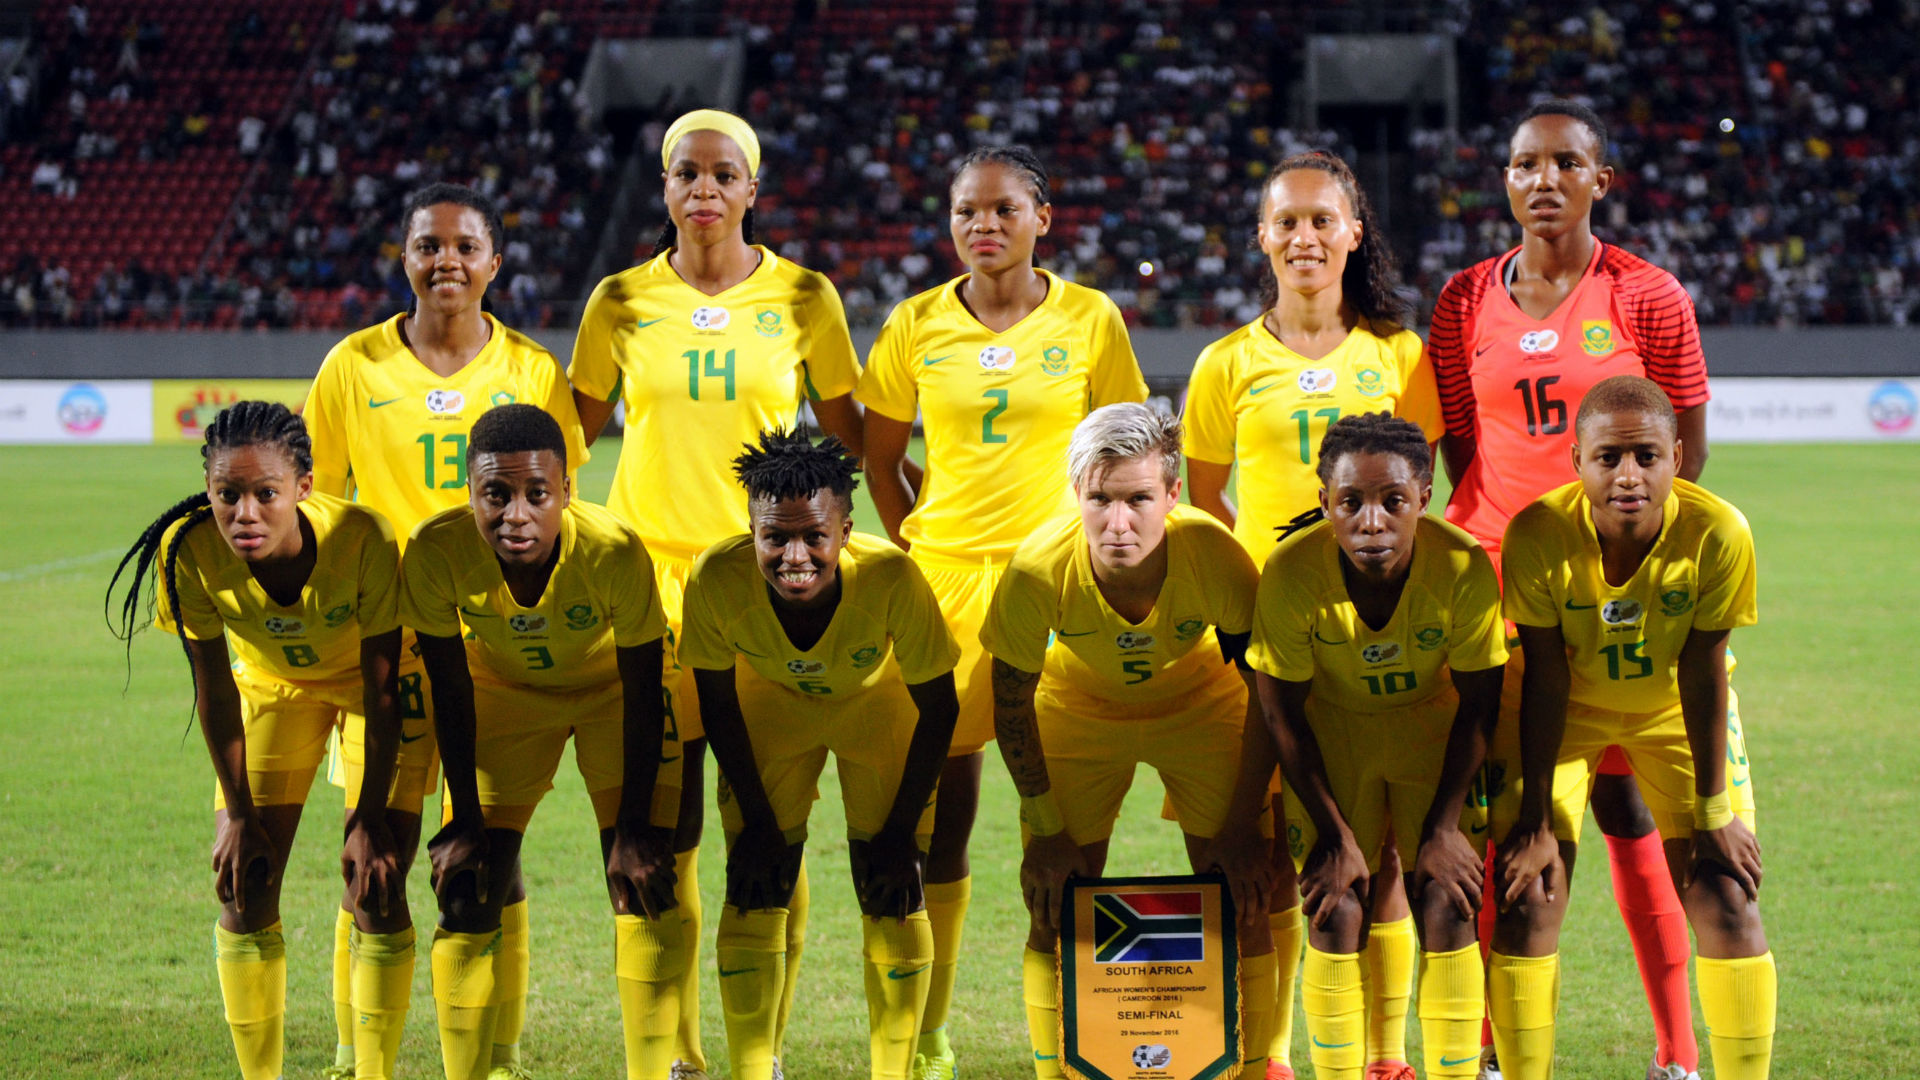 Ellis places three players on standby ahead of South Africa's Women's World Cup trip